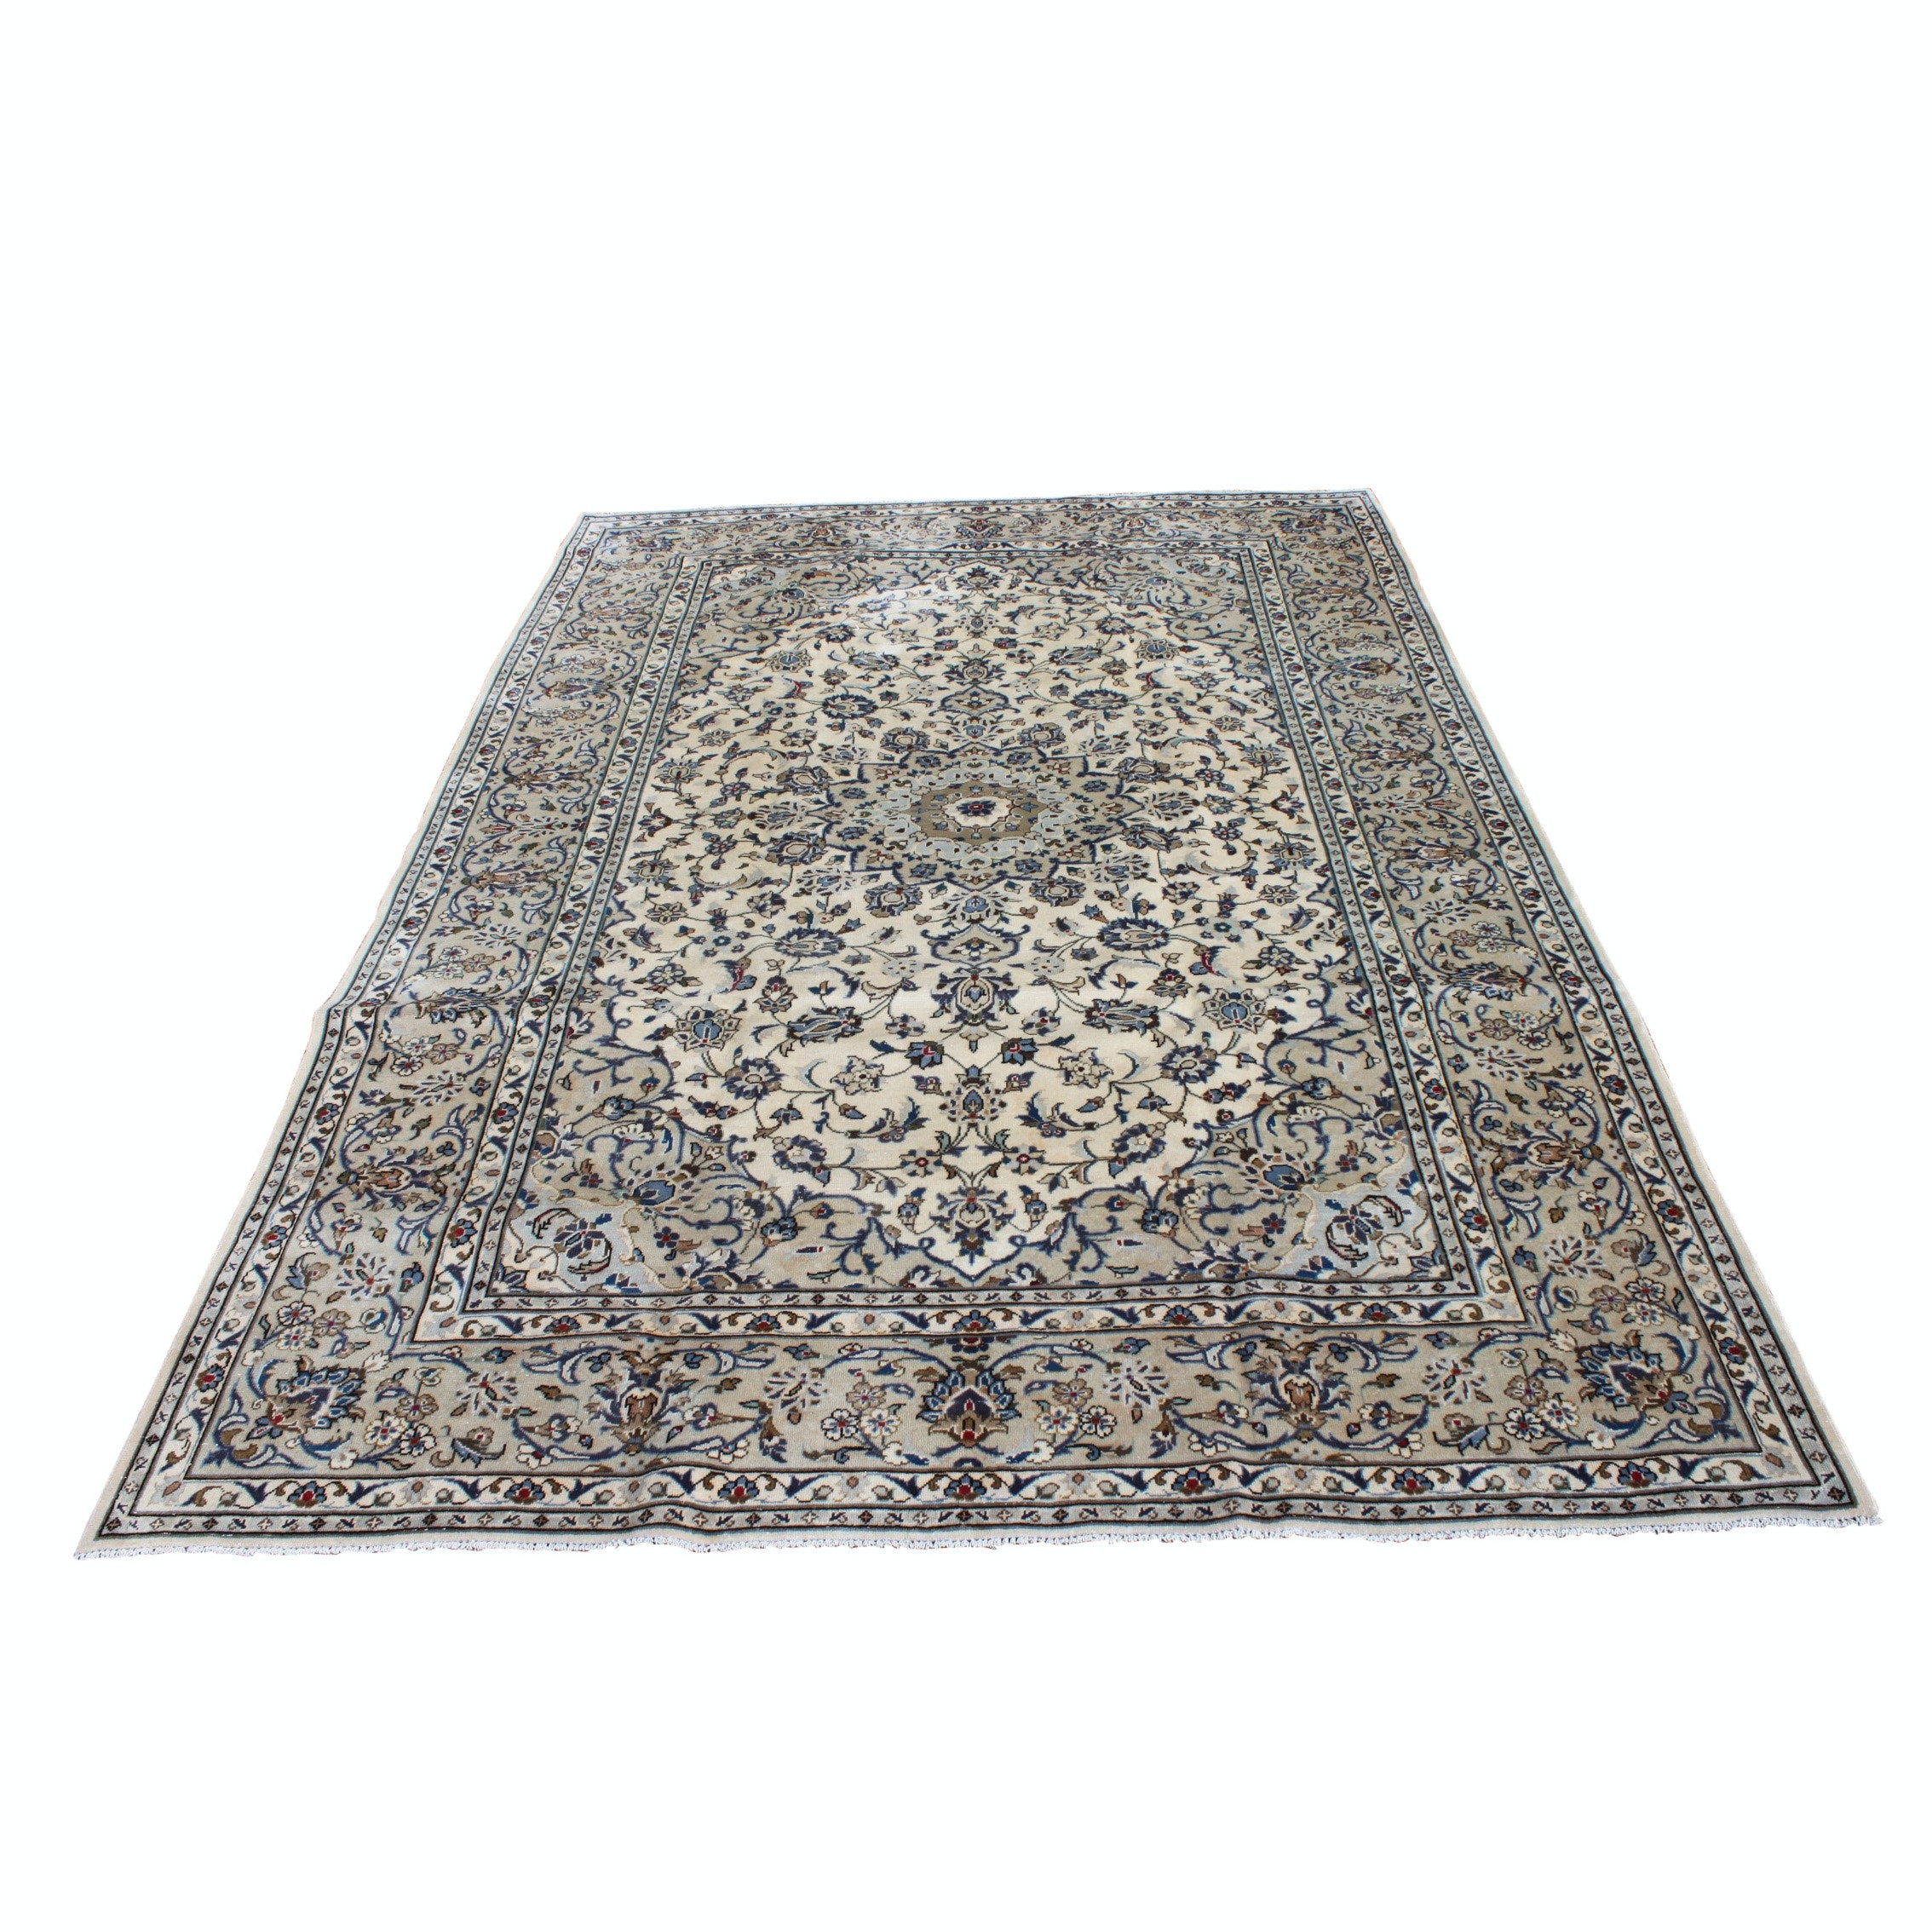 Hand-Knotted Persian Nain Room Size Rug